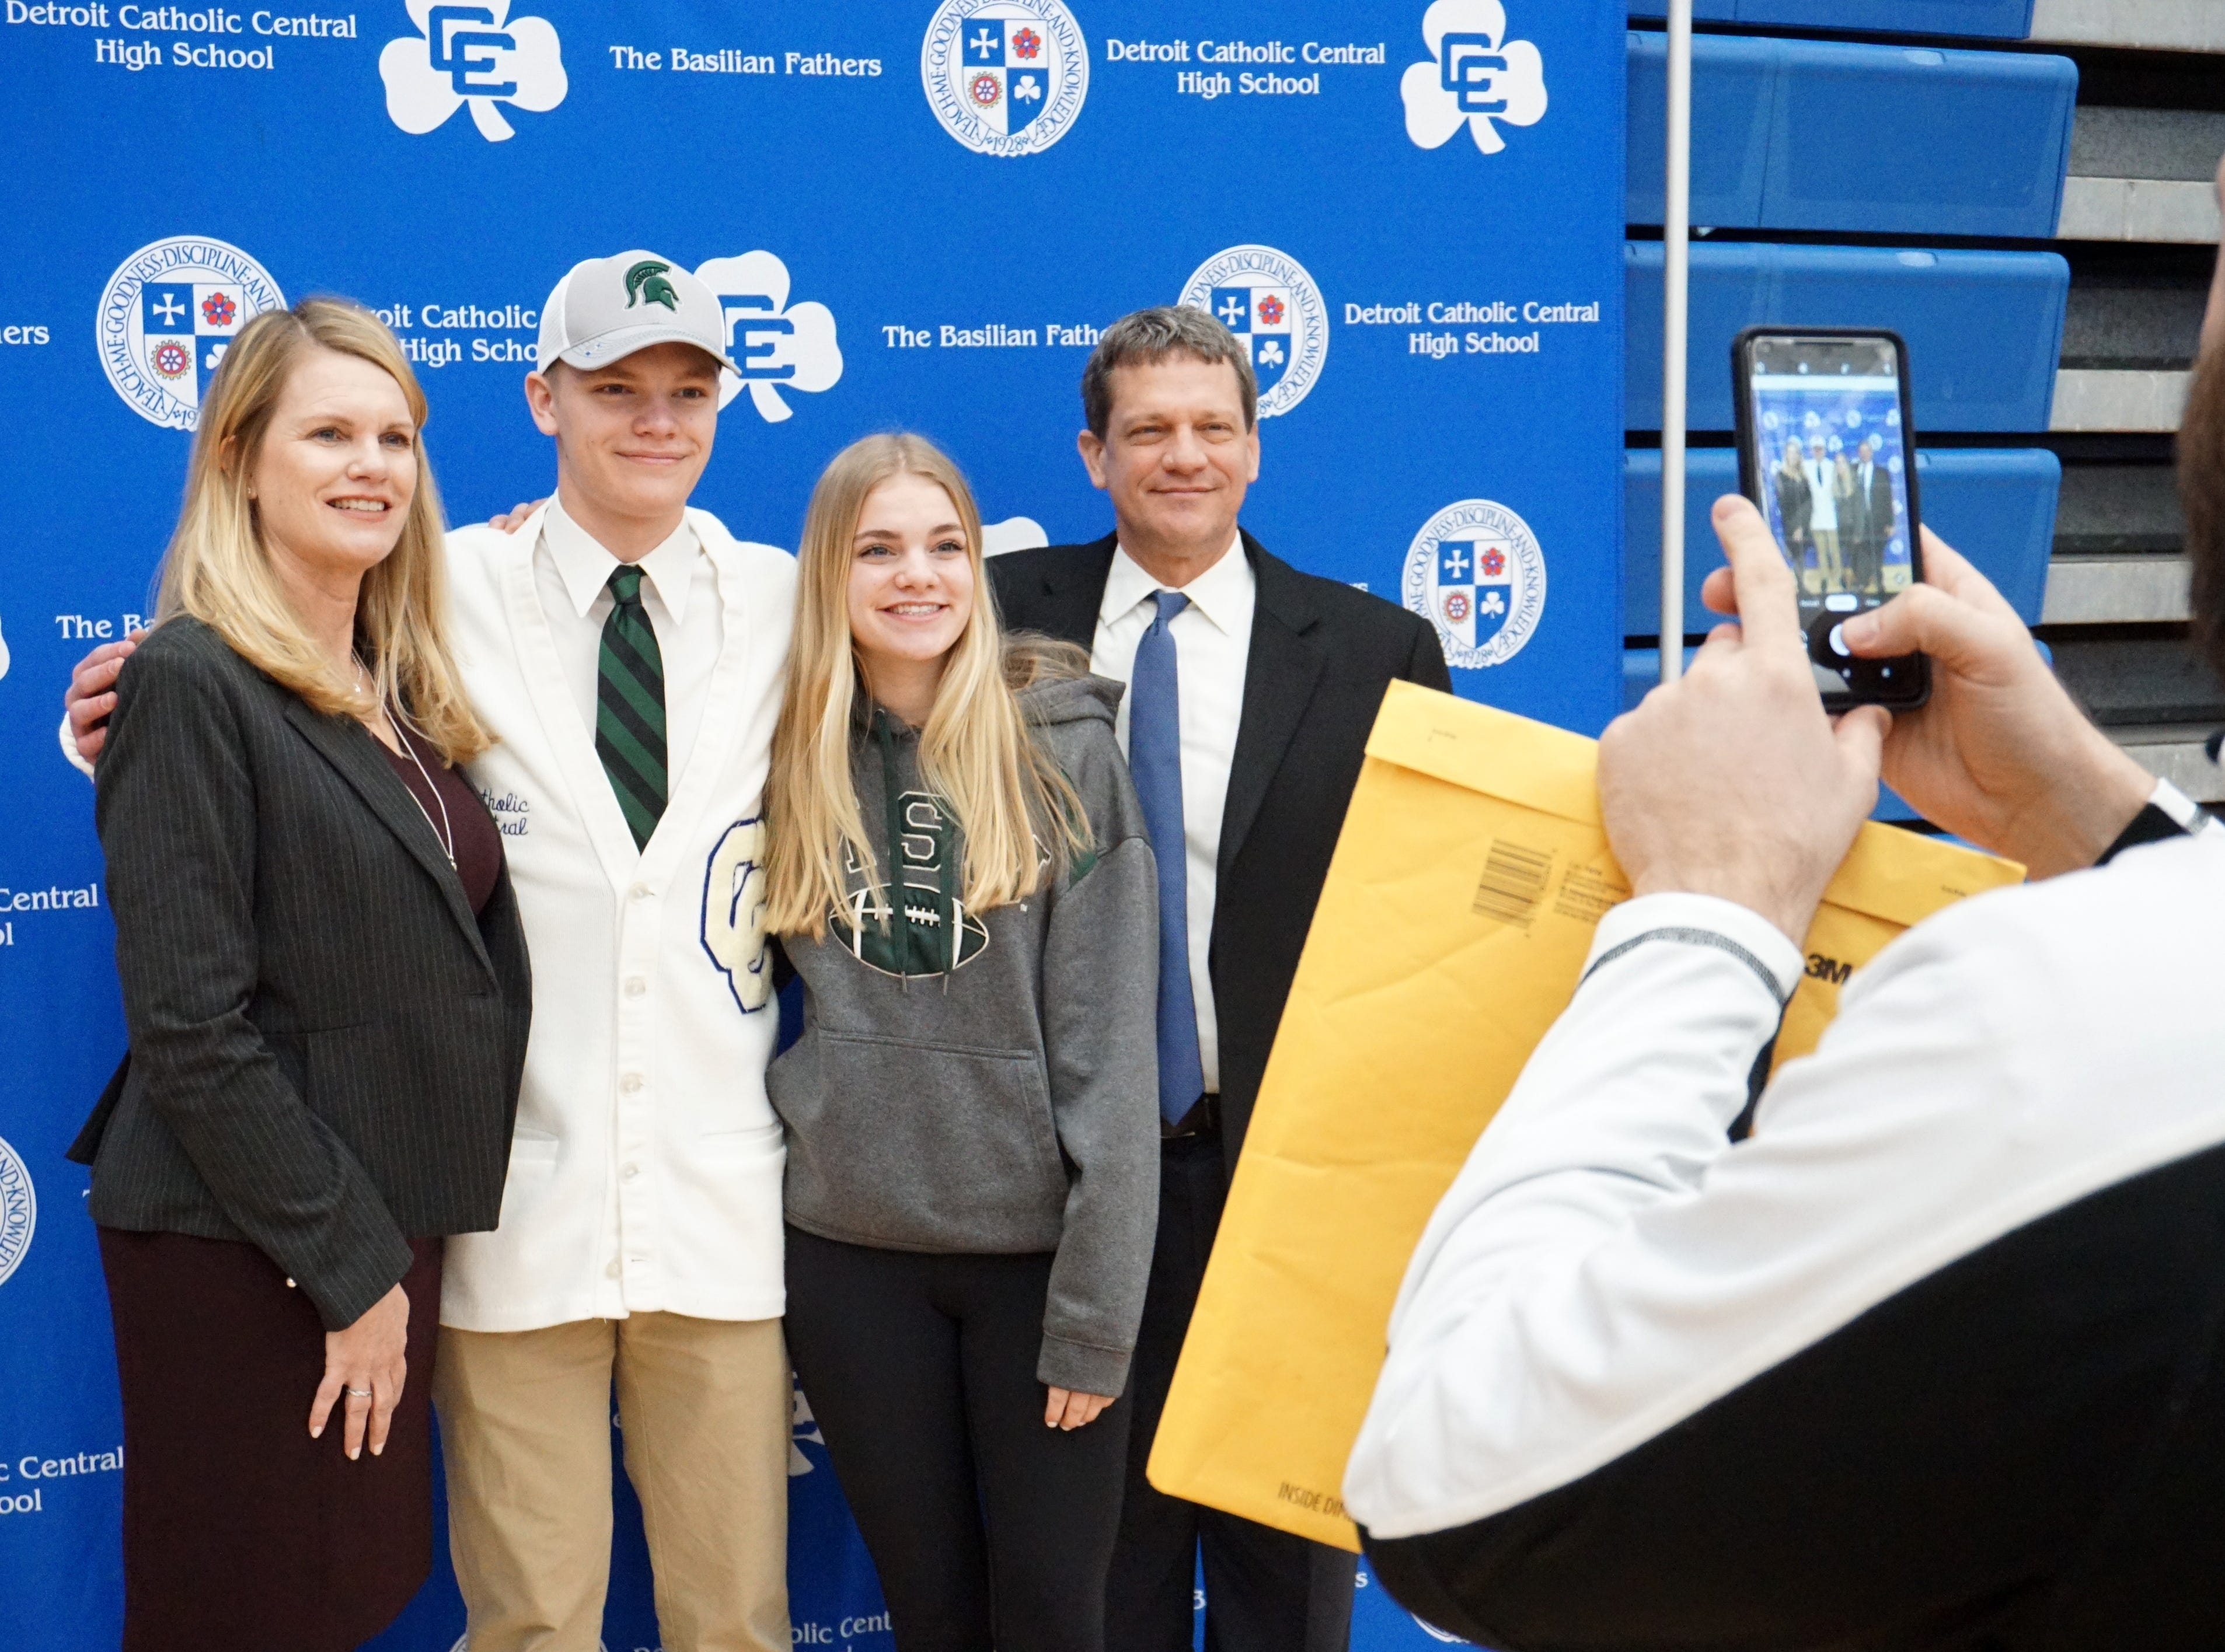 Catholic Central Shamrock Andrew Nicholsen, who will be attending MSU on an athletics scholarship, poses with his mom Gerilyn, sister Taylor, and father Hans at the school's Feb. 7 Signing Day ceremony. Director of admissions Jake Marmul, snaps a cell phone photo at right.